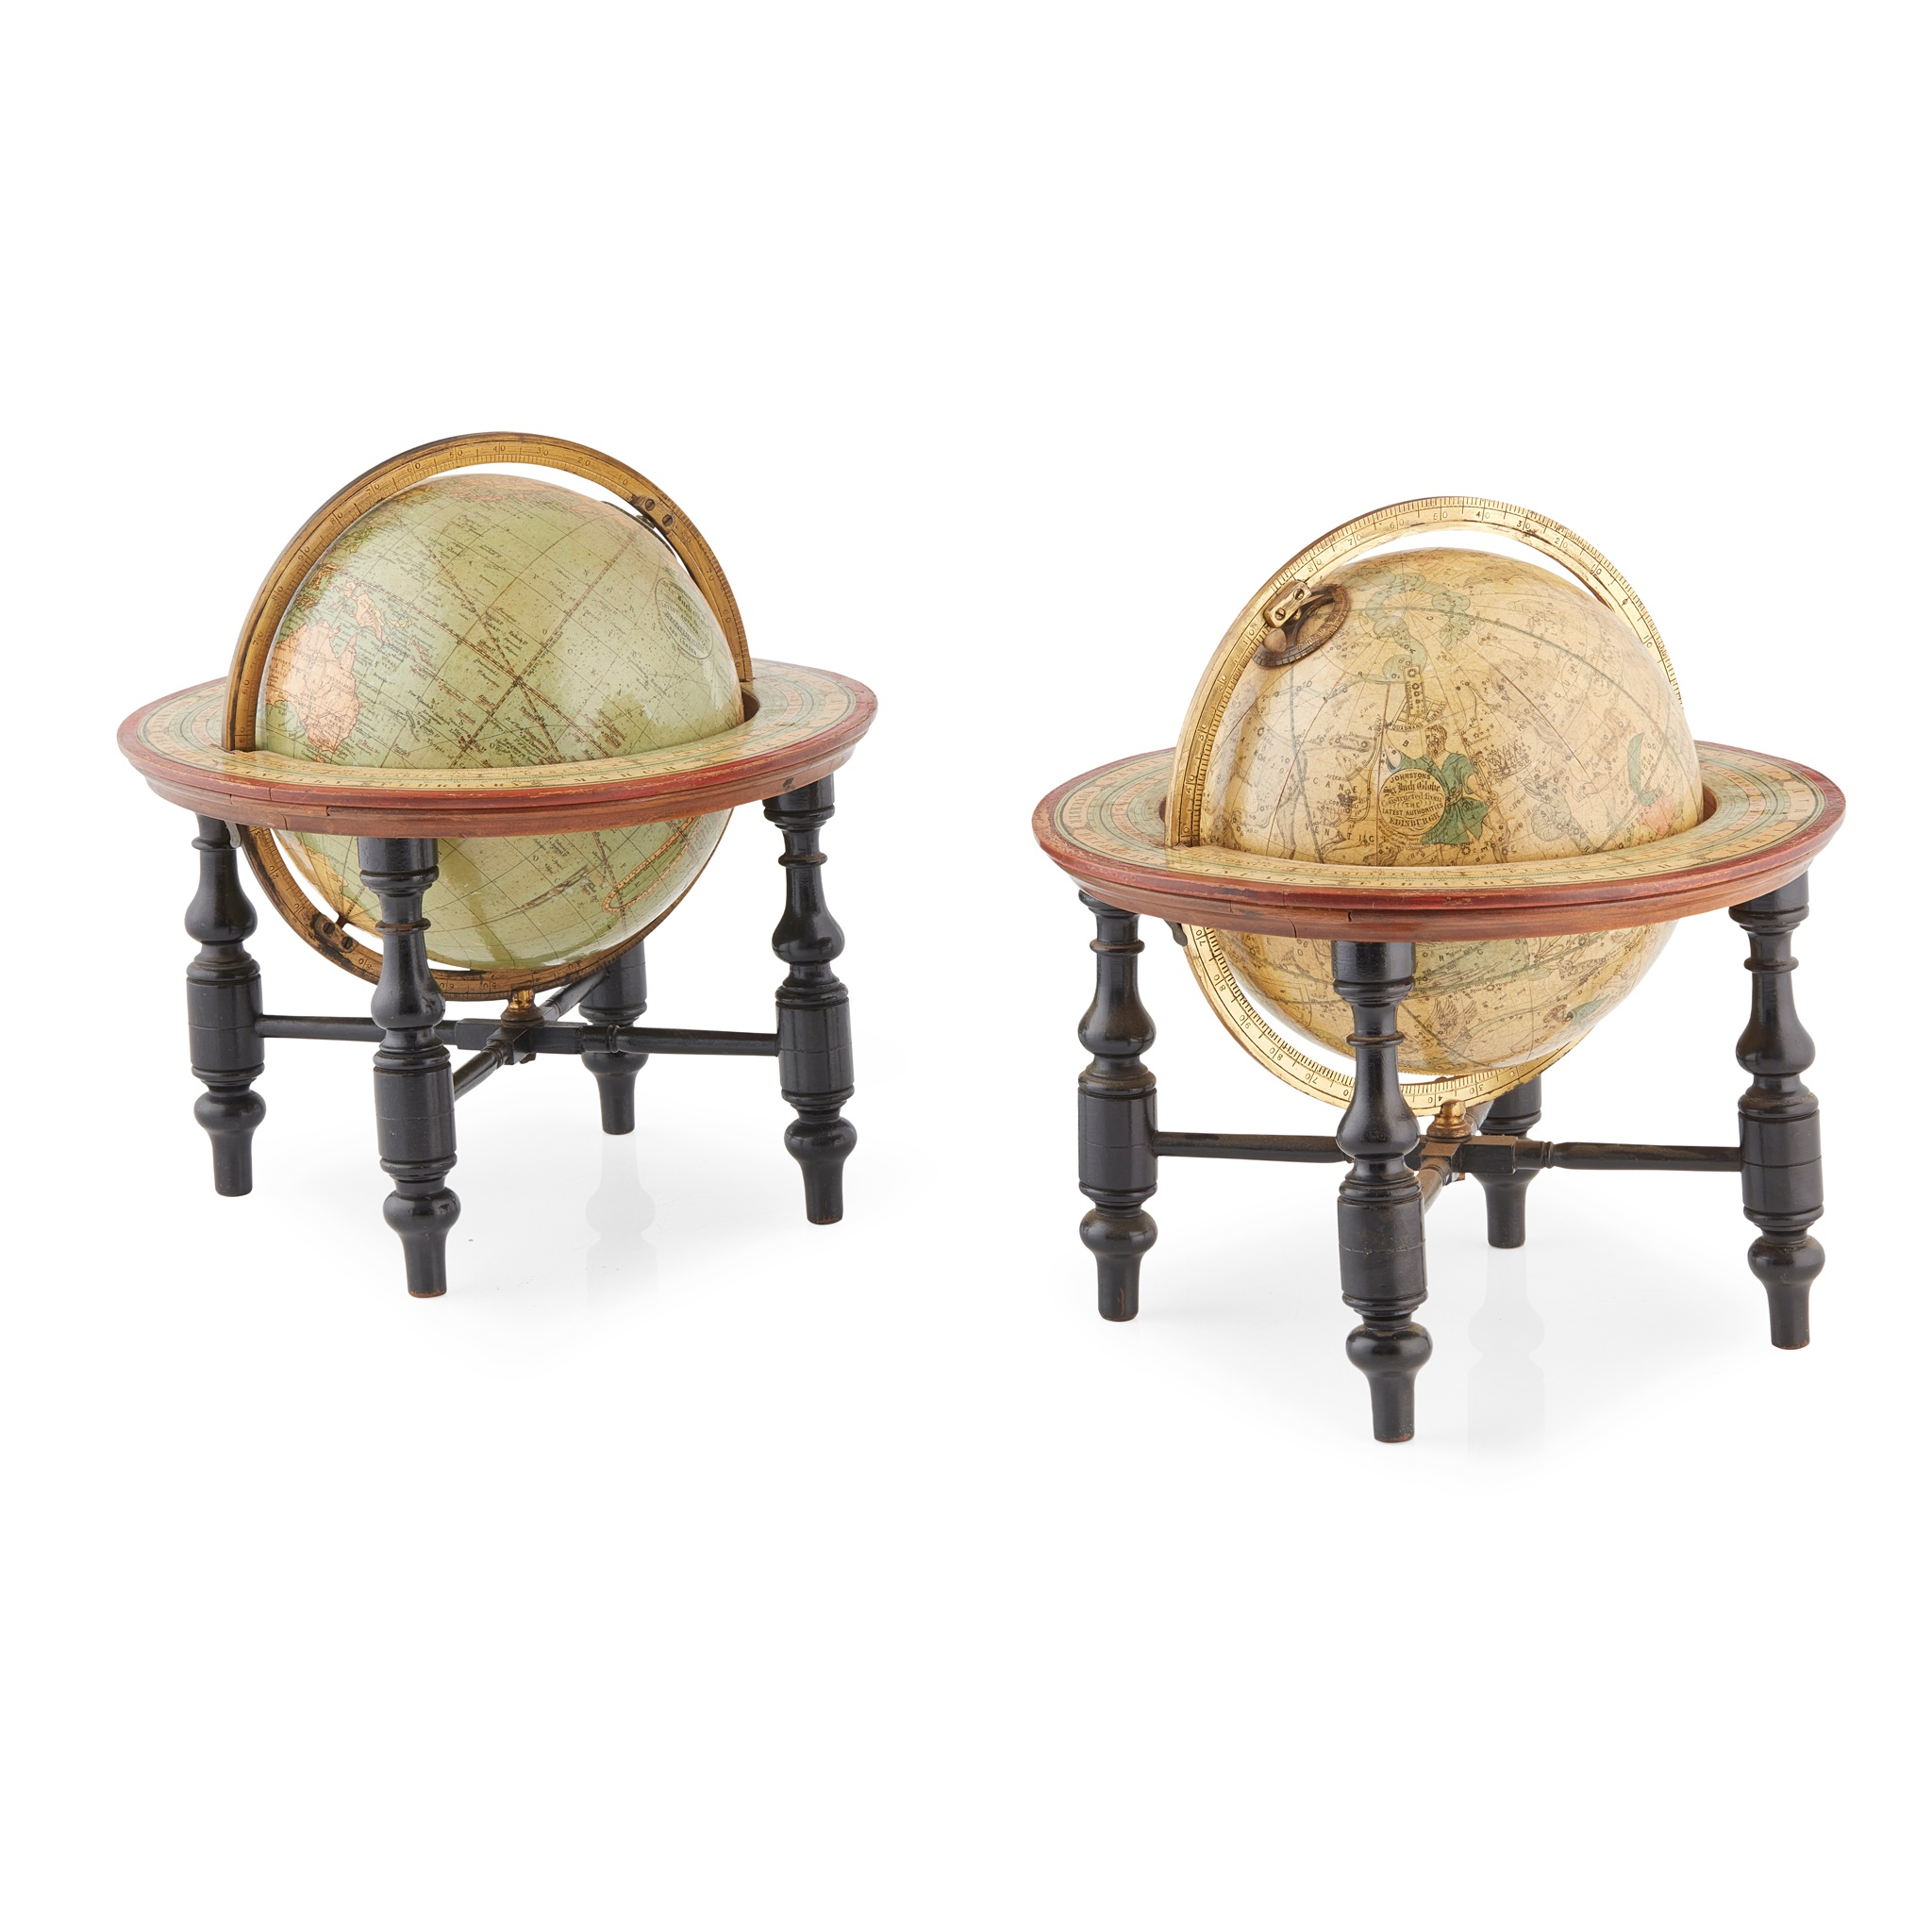 PAIR OF SIX-INCH TERRESTIAL AND CELESTIAL JOHNSTON'S TABLE GLOBES LATE 19TH CENTURY